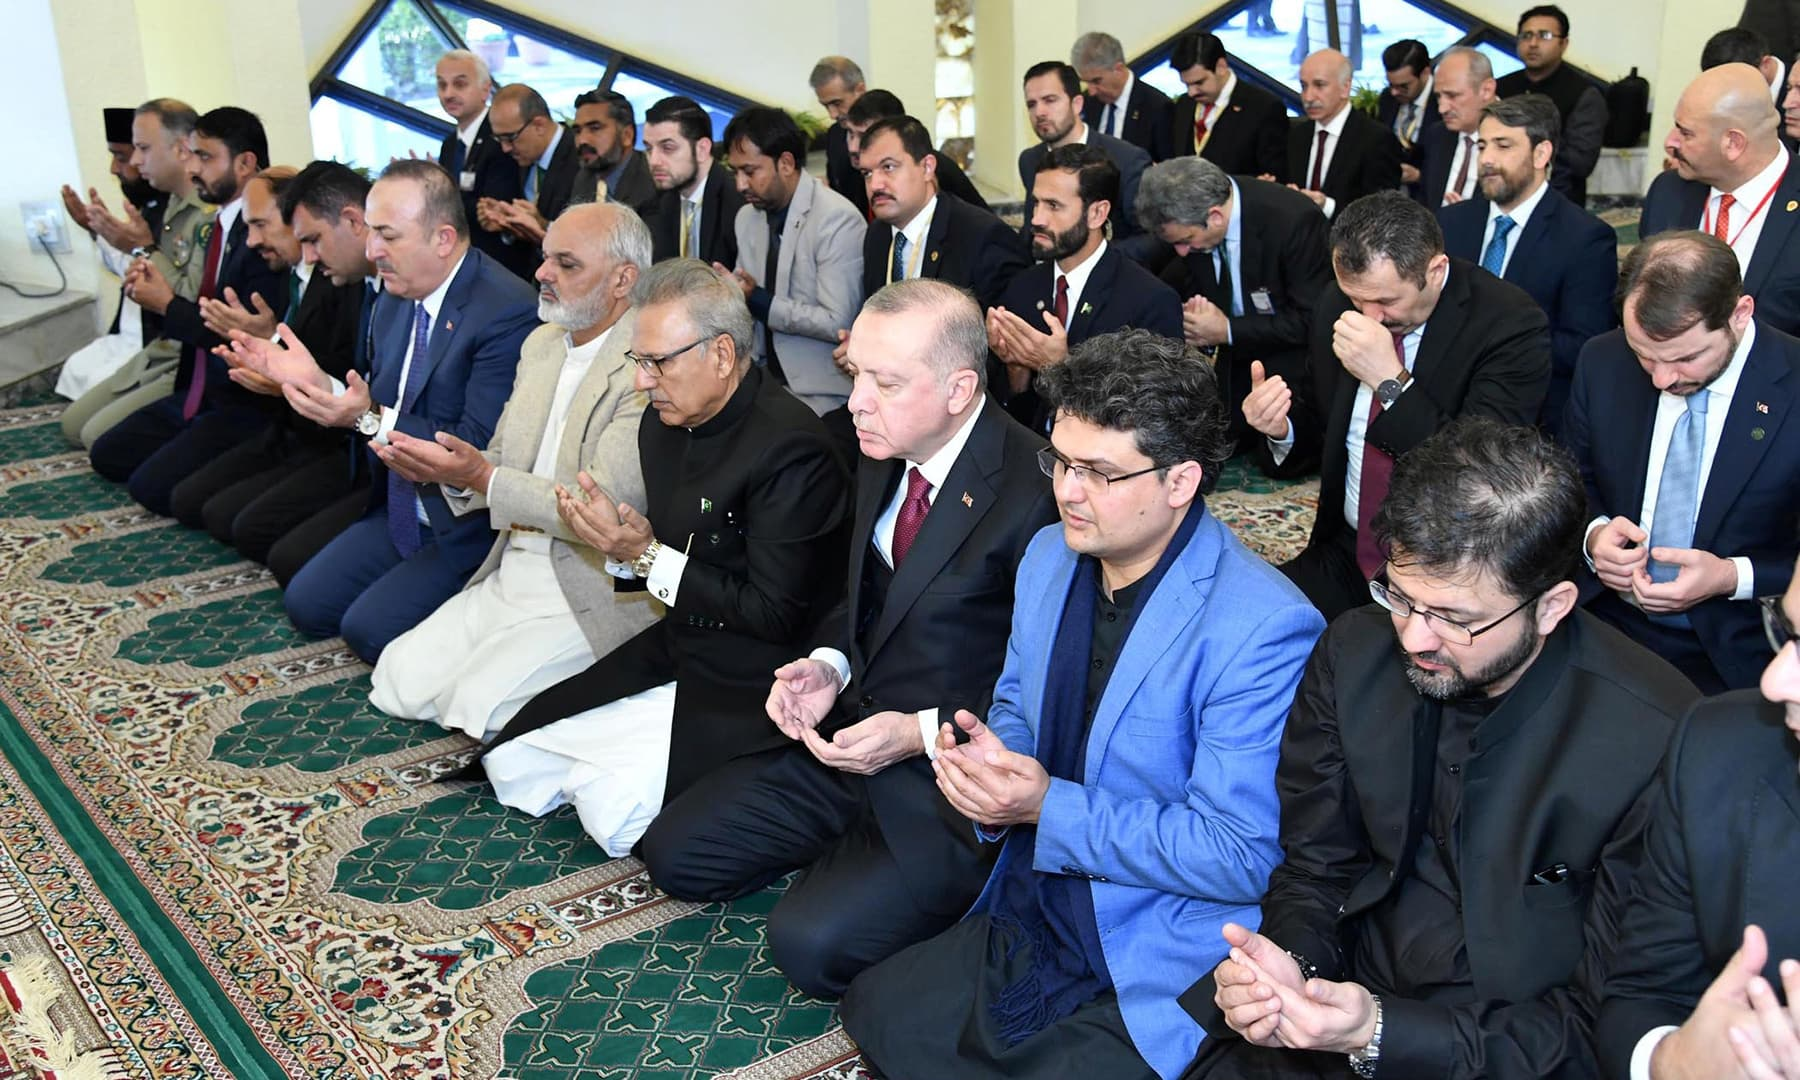 Turkish President Erdogan along with President Arif Alvi hold palms as they attend Friday prayers at President House in Islamabad. — Reuters